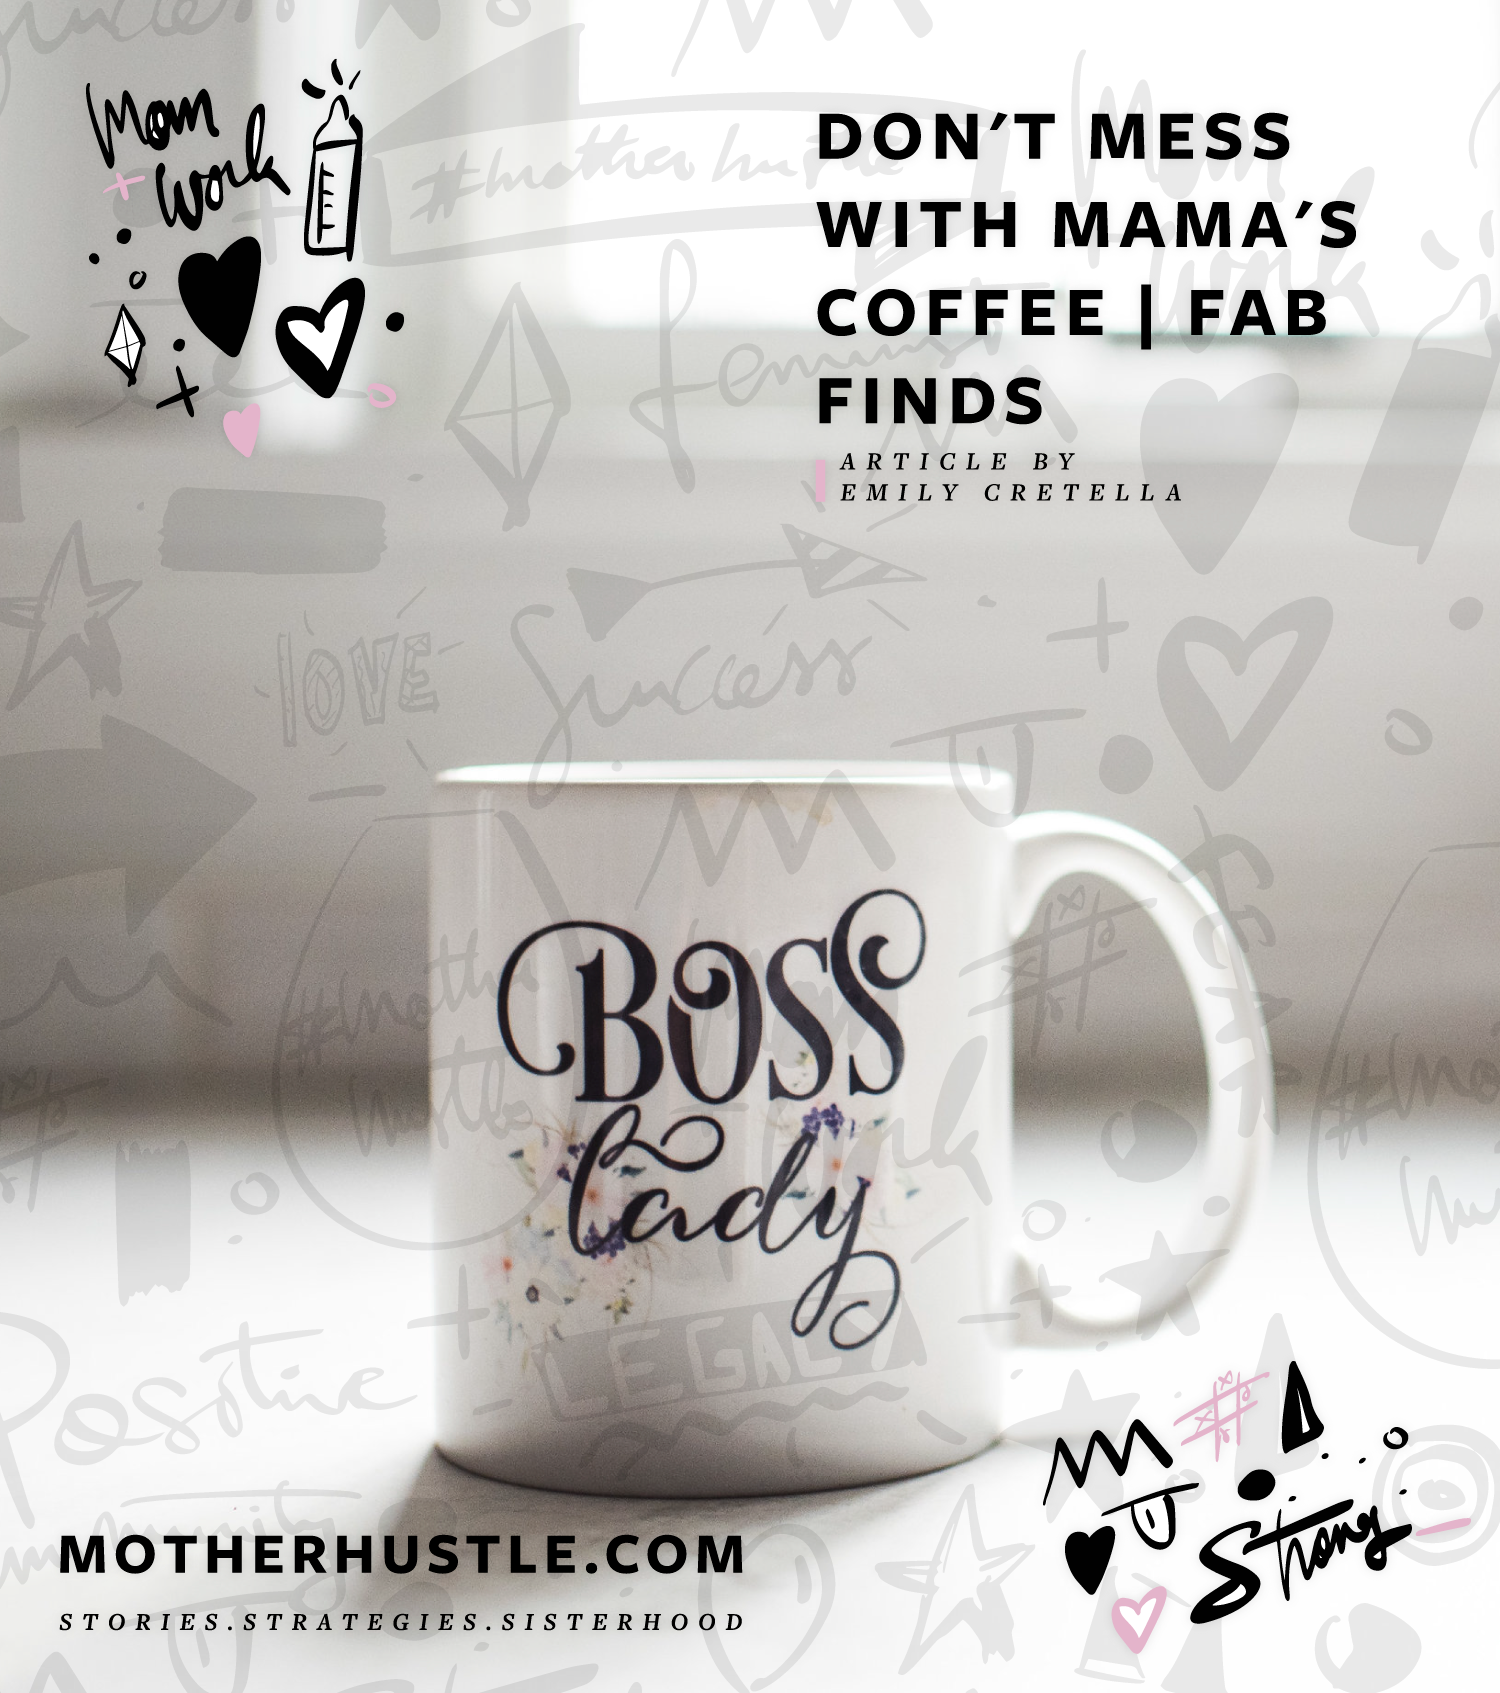 Don't Mess With Mama's Coffee - Fab Finds